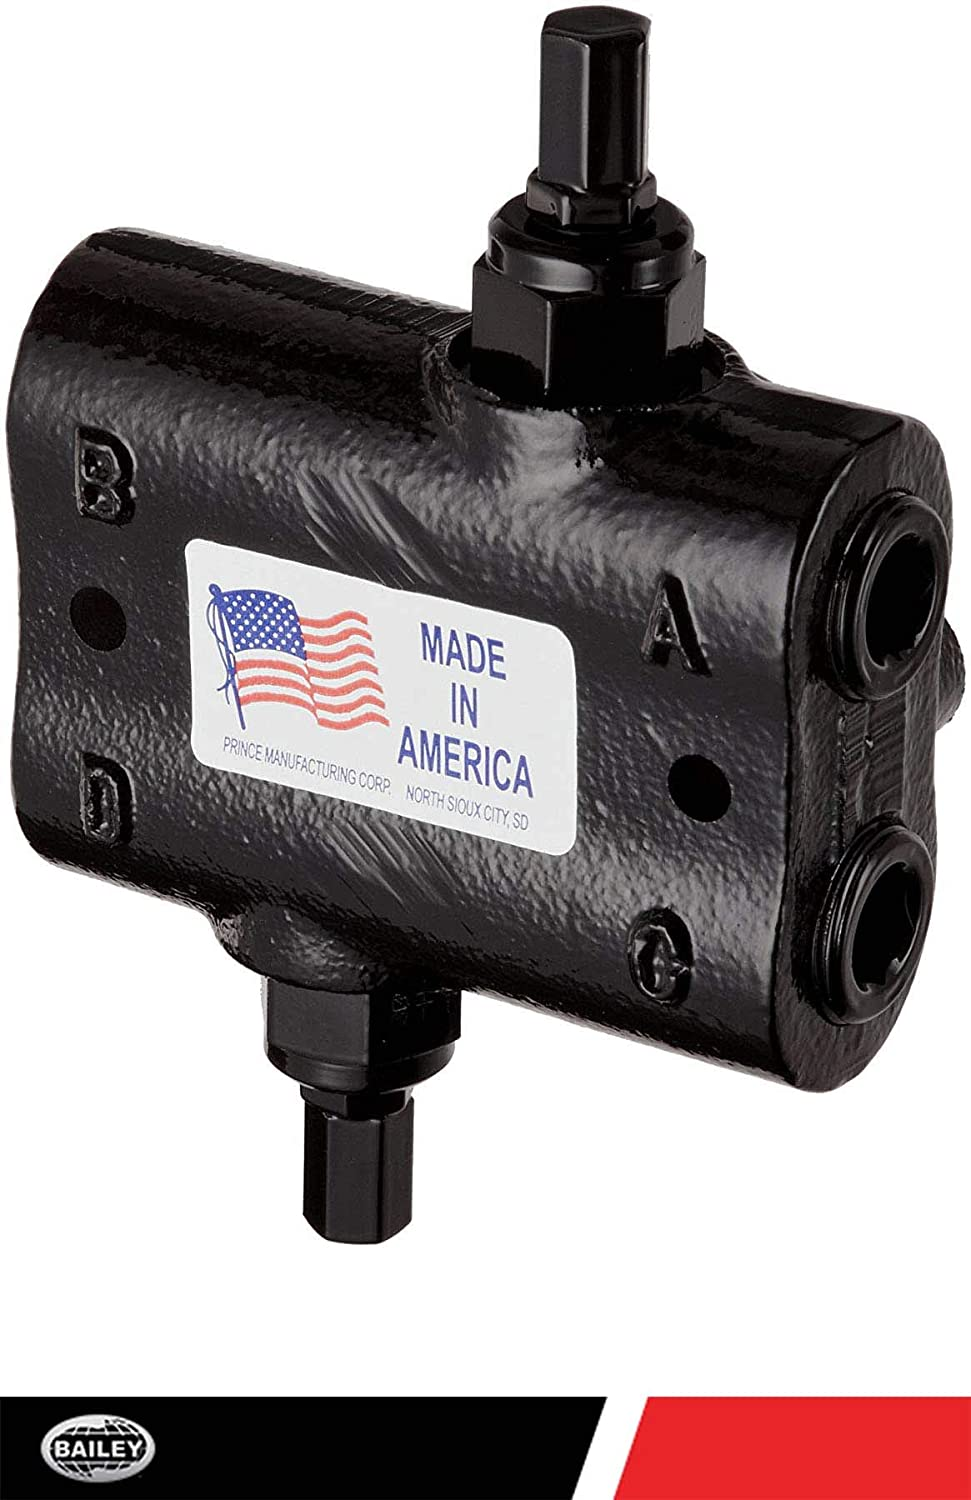 Prince Double Relief Cushion Valve: No. DRV-2HH30,Max 30 GPM 1500-3000 PSI Adjustable Range and Max PSI Upto 3000 with 3/4